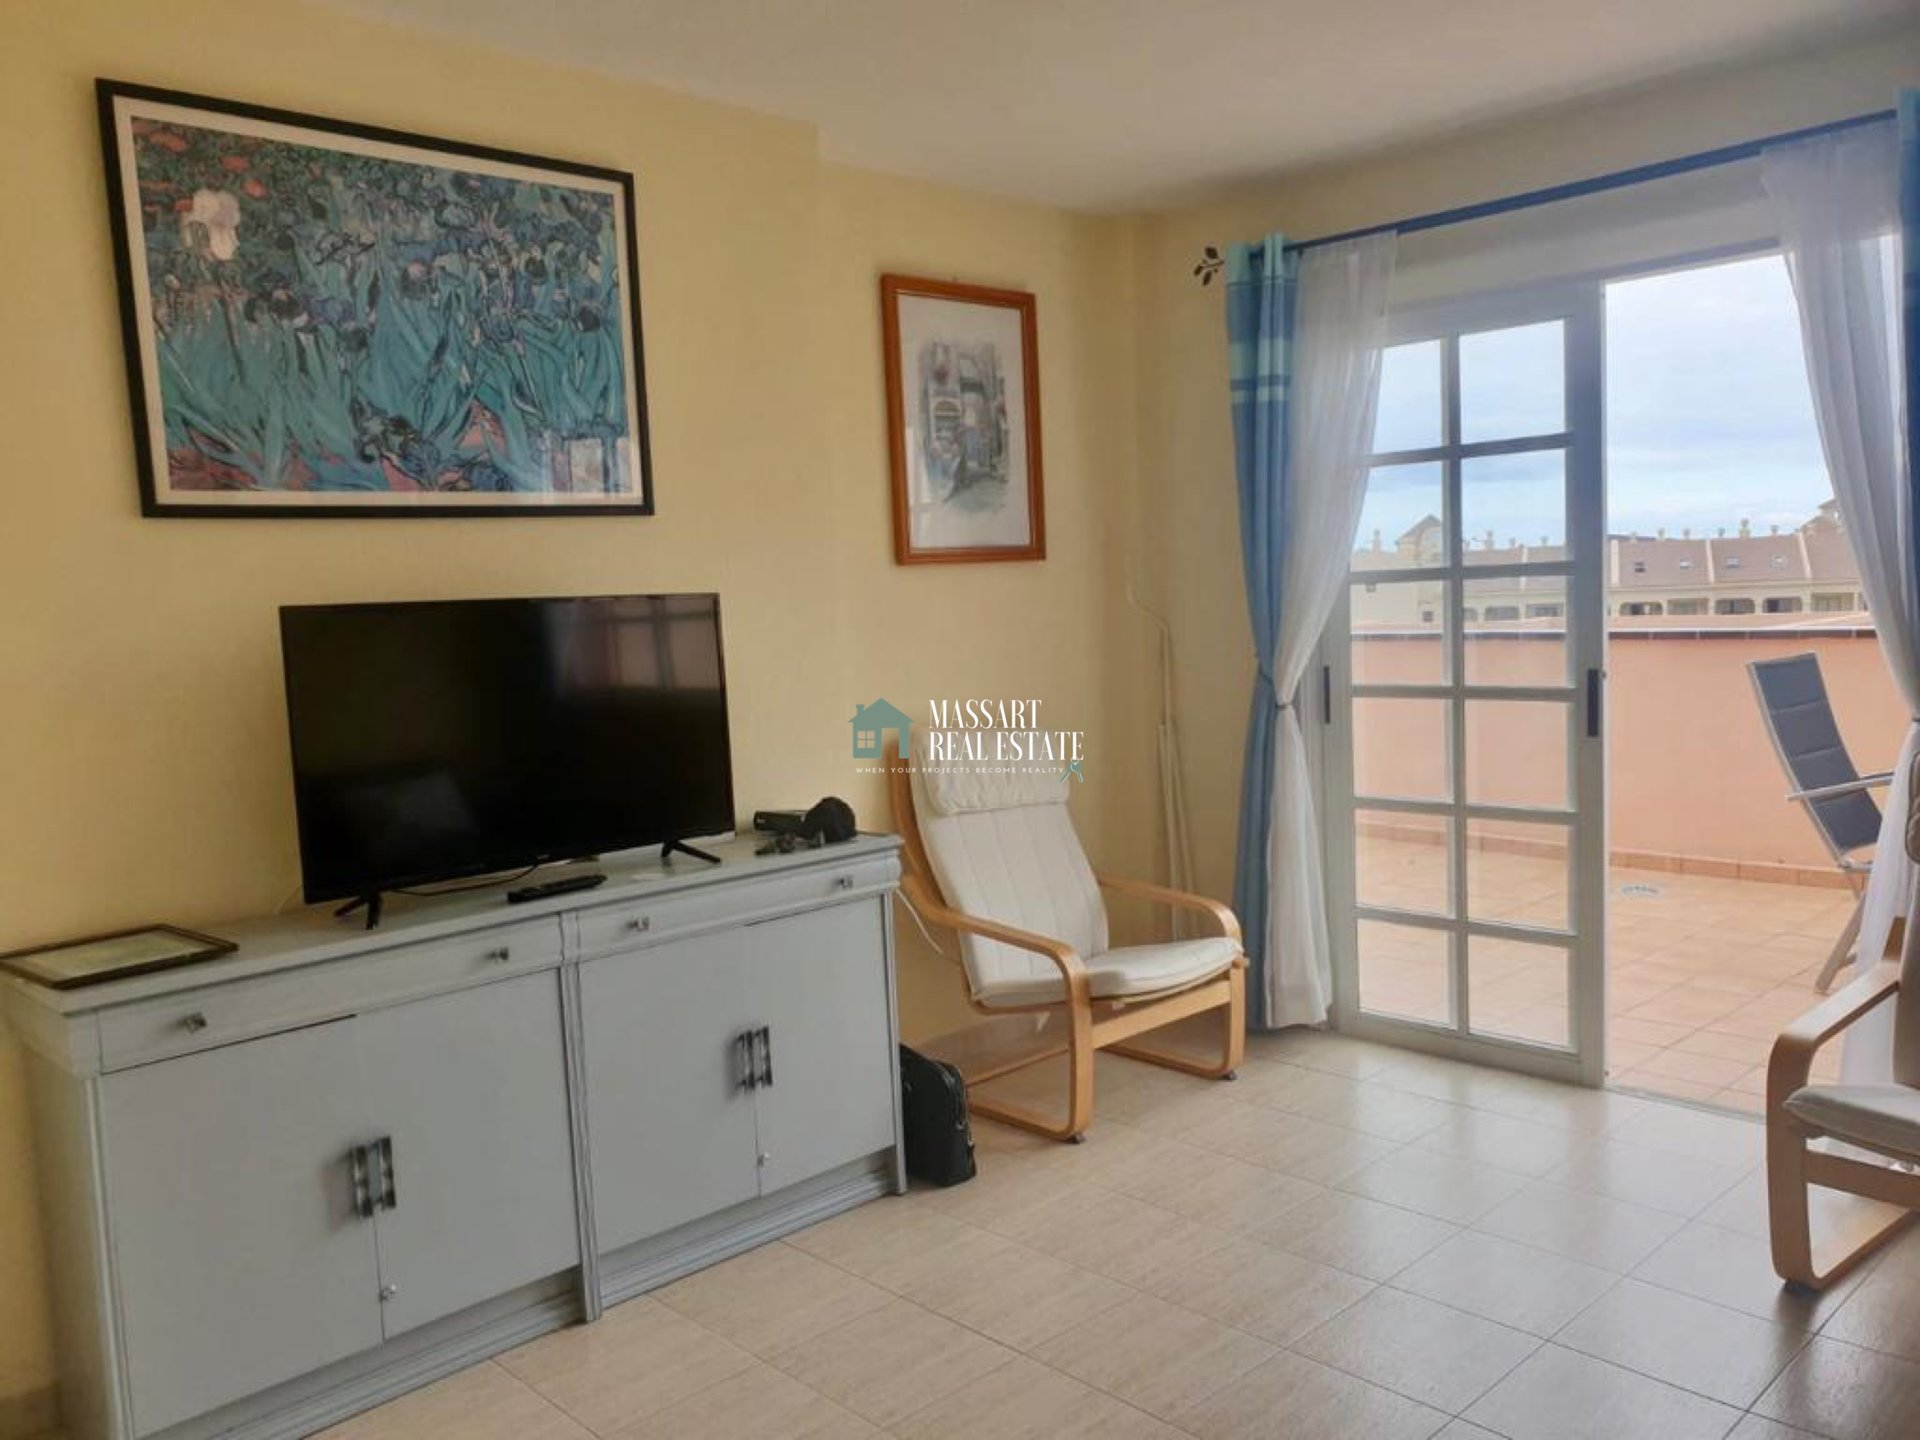 For sale in the popular area of Los Cristianos, in the residential complex The Heights, fully furnished apartment characterized by offering a wonderful 20 m2 terrace.